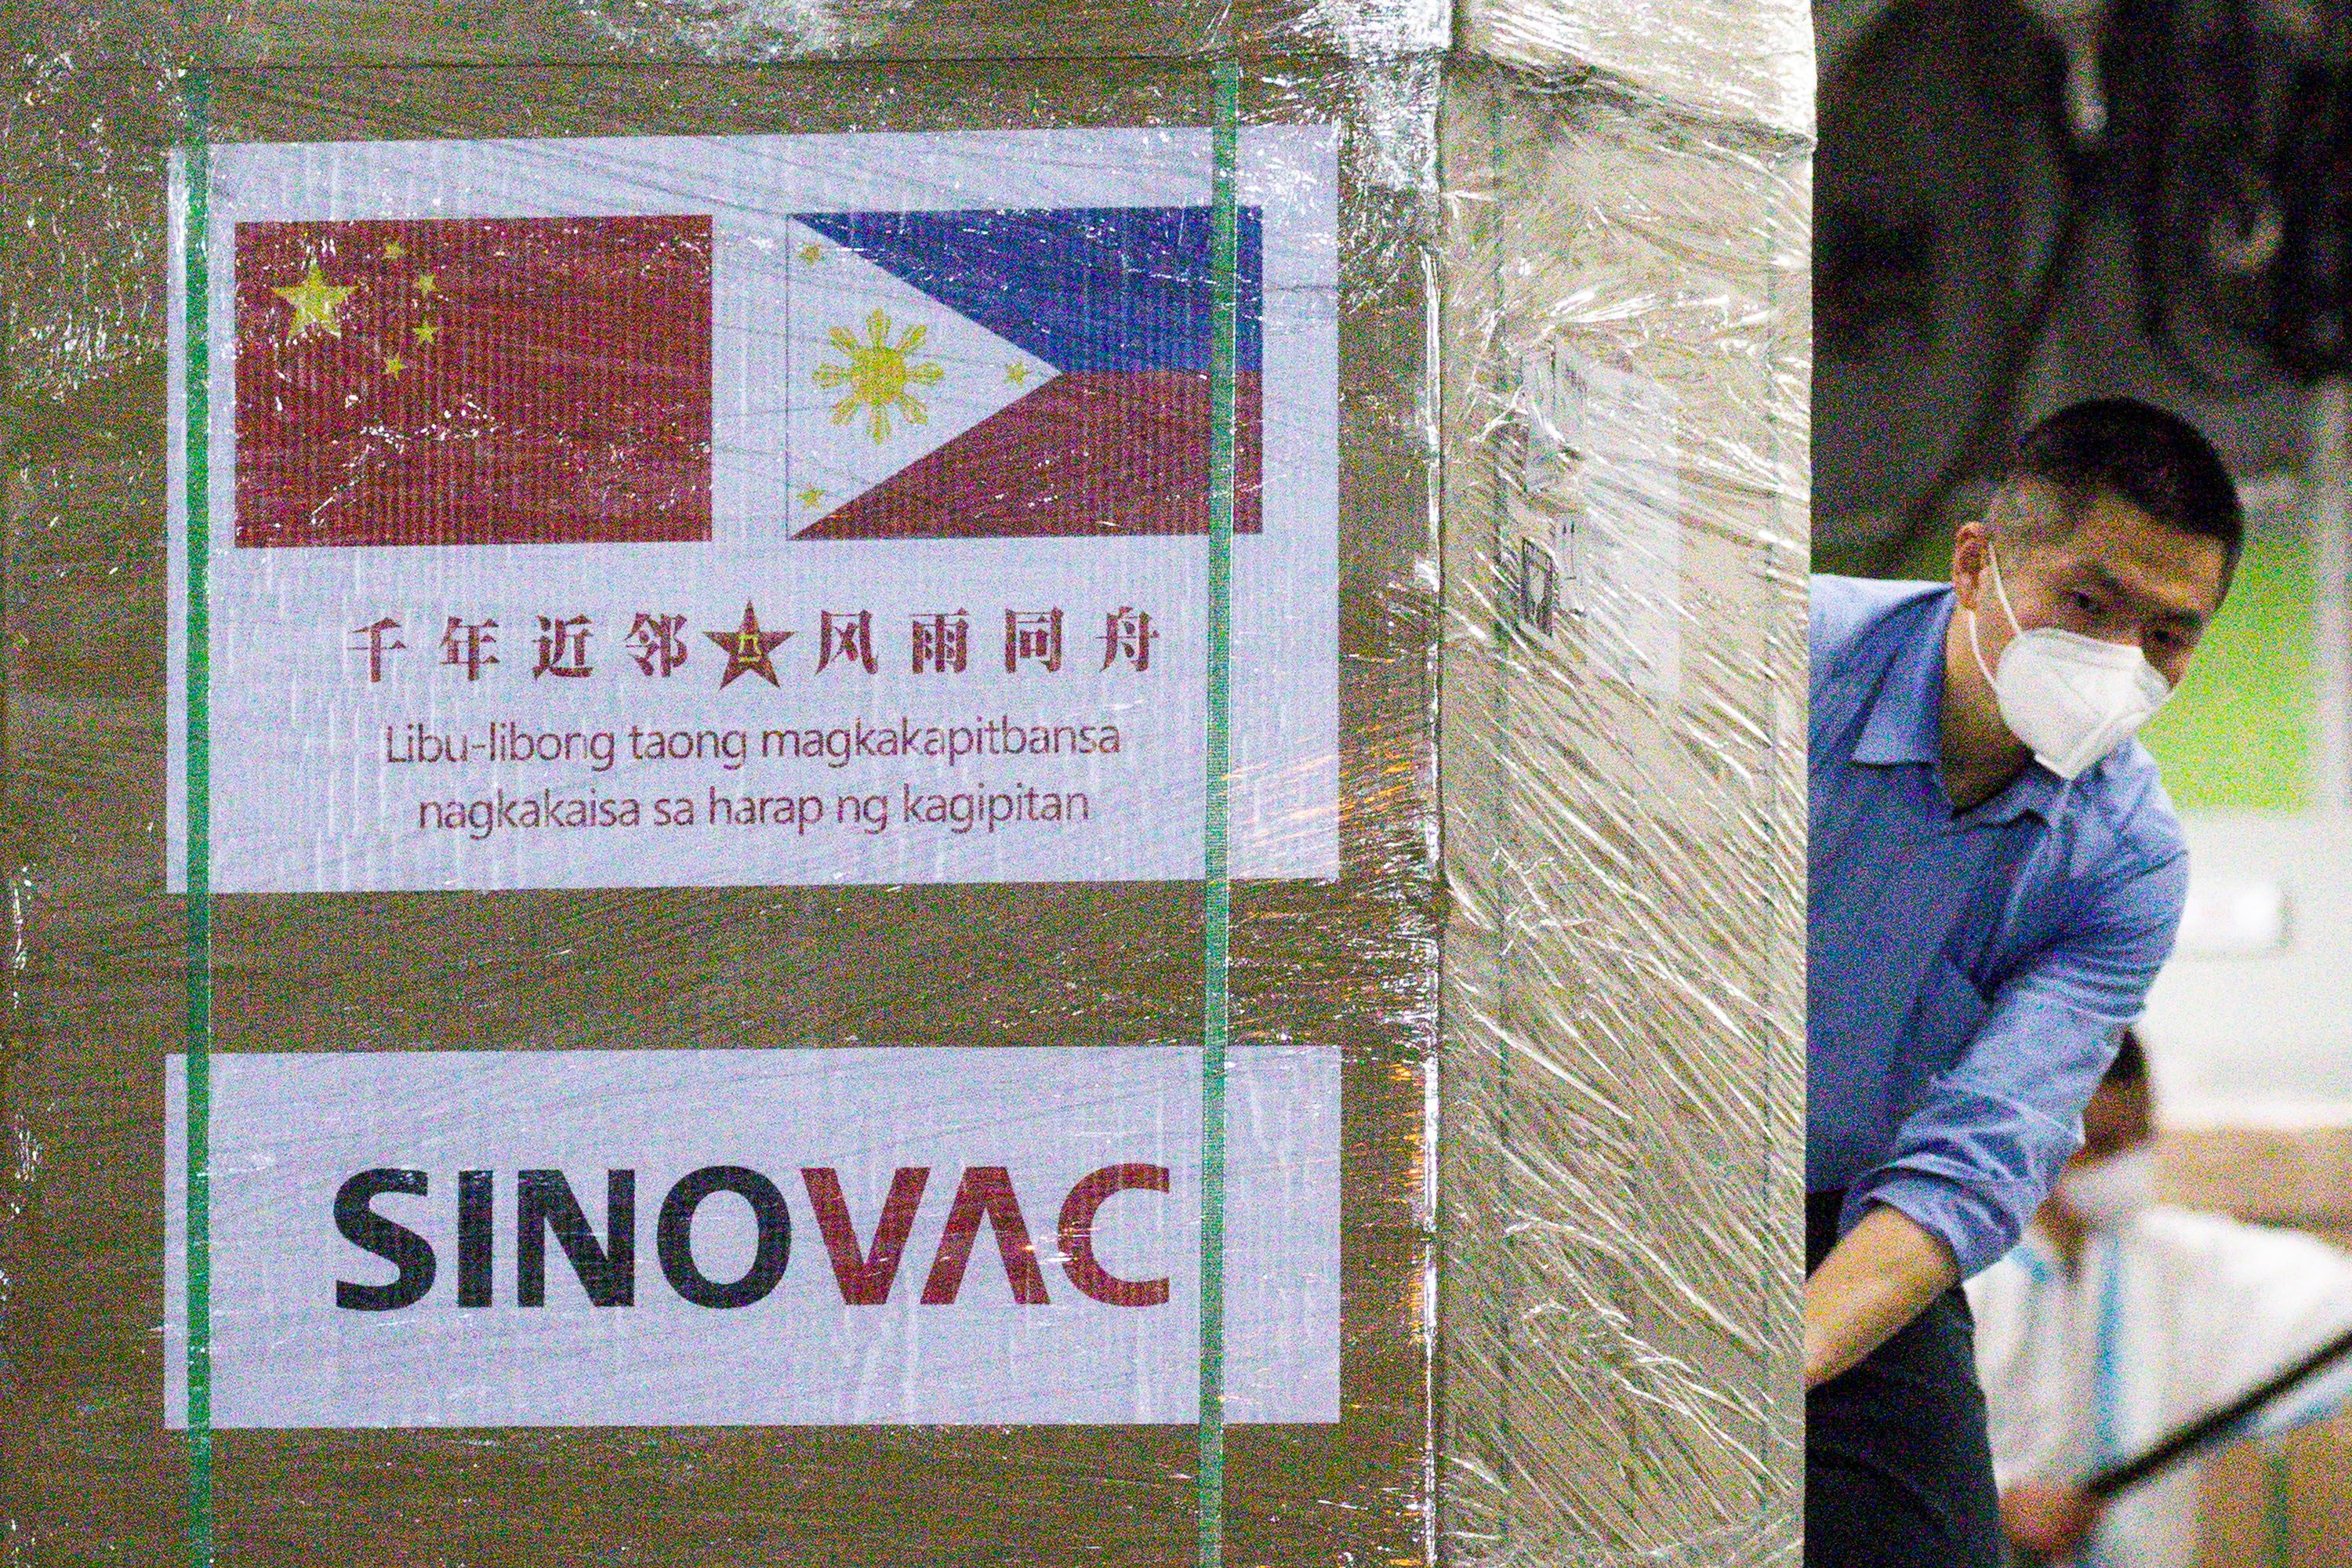 A worker unloads a box of Sinovac Biotech's CoronaVac vaccines against the coronavirus disease (COVID-19) from a Chinese military aircraft at Villamor Air Base in Pasay, Metro Manila, Philippines, February 28, 2021. REUTERS/Eloisa Lopez